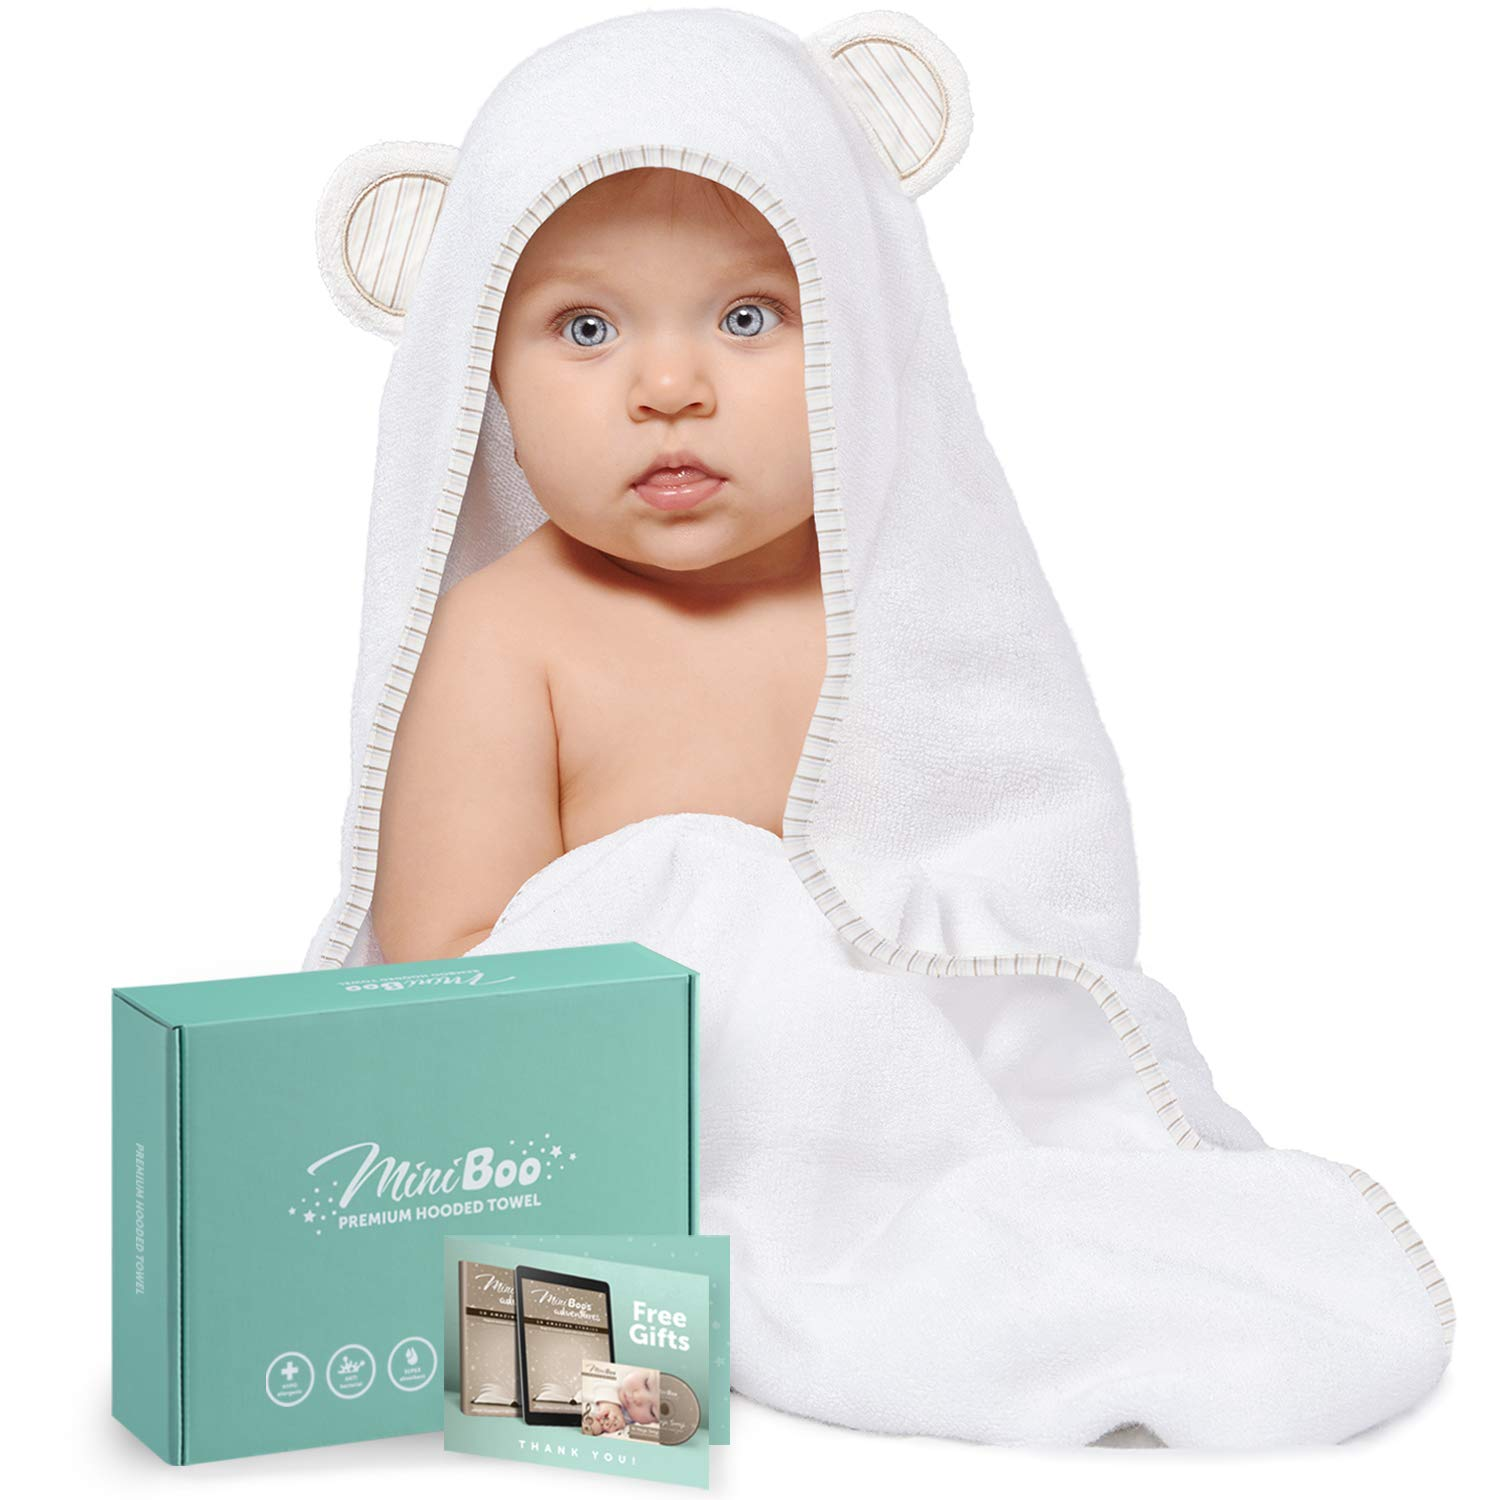 Organic Bamboo Baby Hooded Towel – Ultra Soft and Super Absorbent Baby Towels for Newborns, Infants and Toddlers – Suitable as Baby Gifts